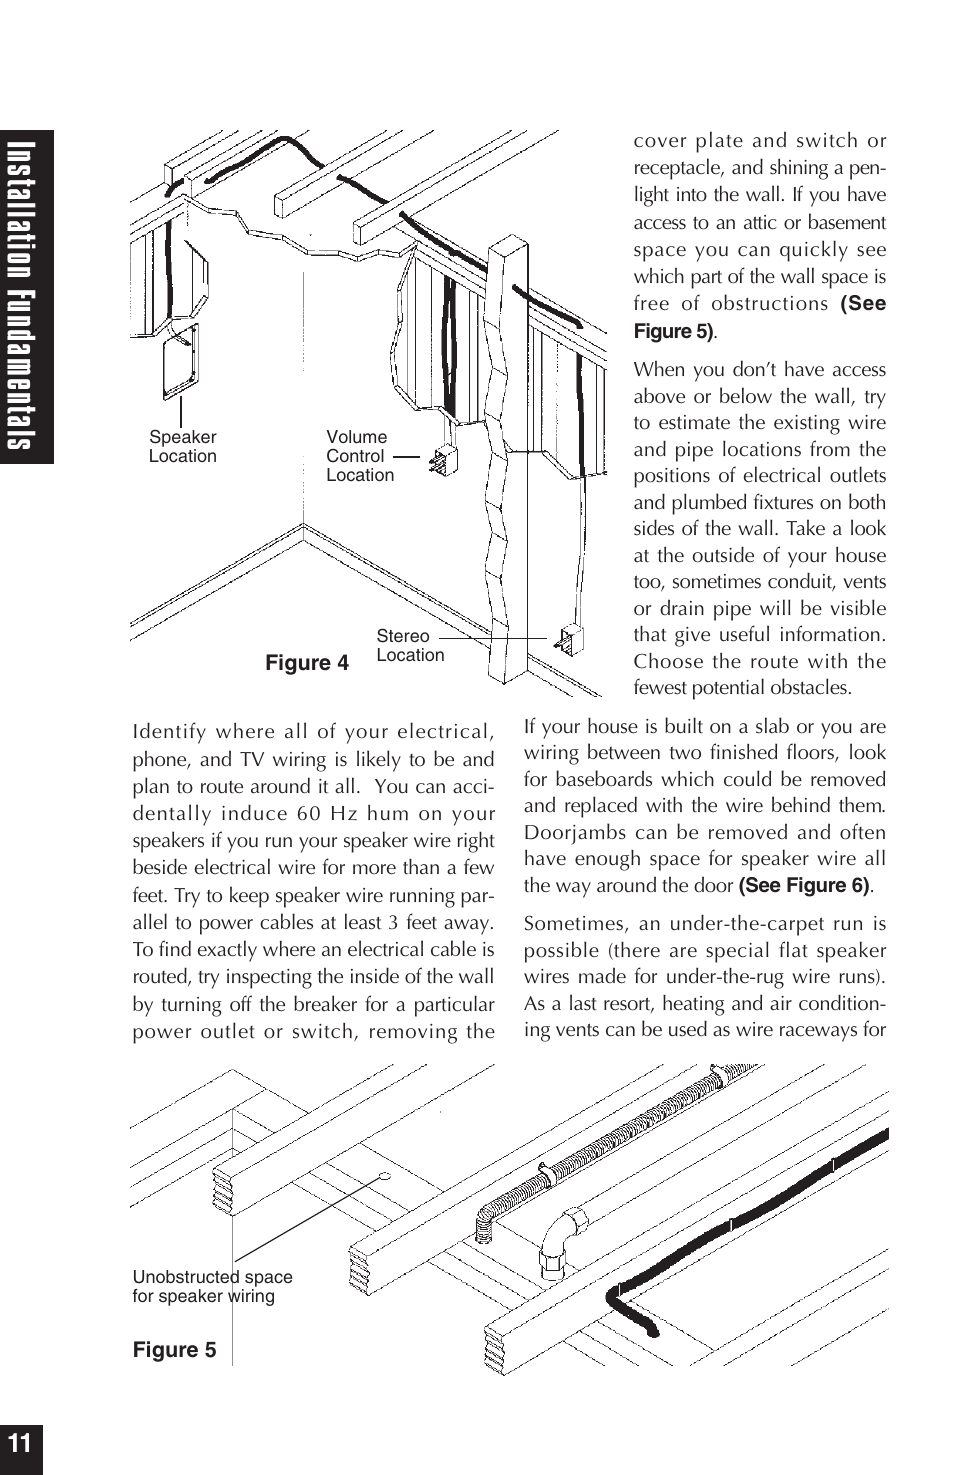 ins tall atio nf und am ent als | niles audio hd5 user manual | page 12 / 28